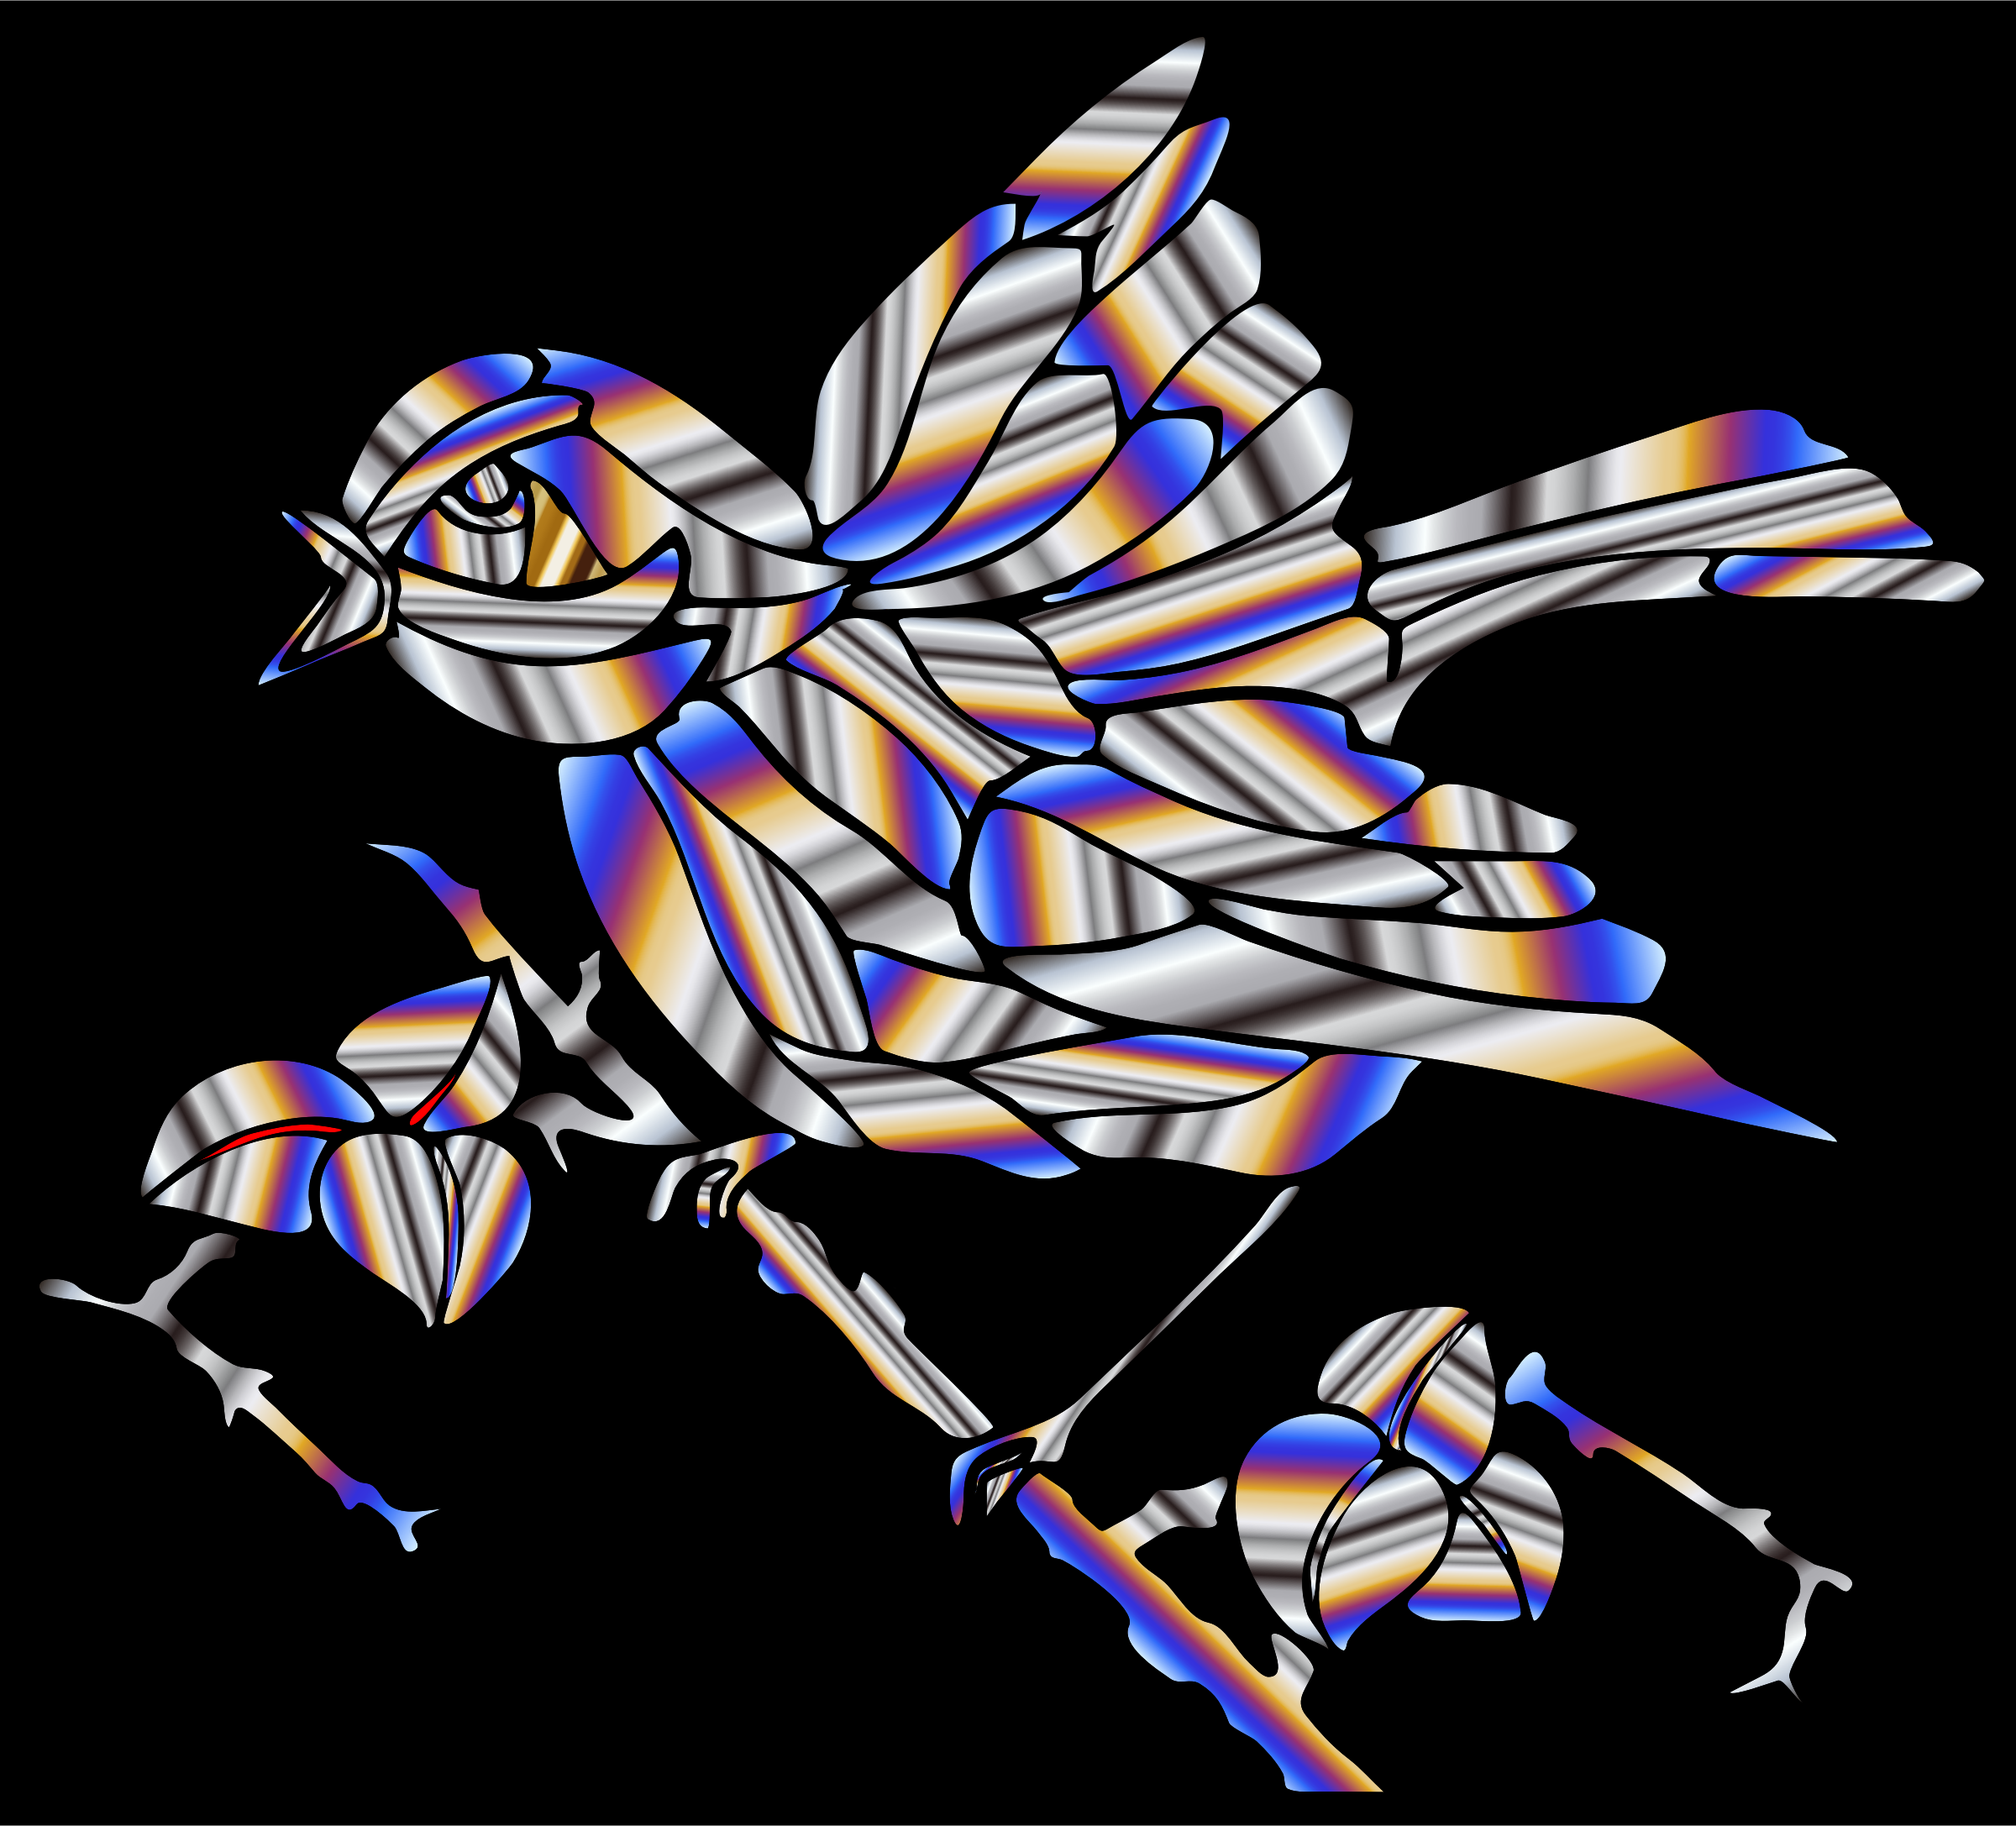 Prismatic Bird 5 by GDJ